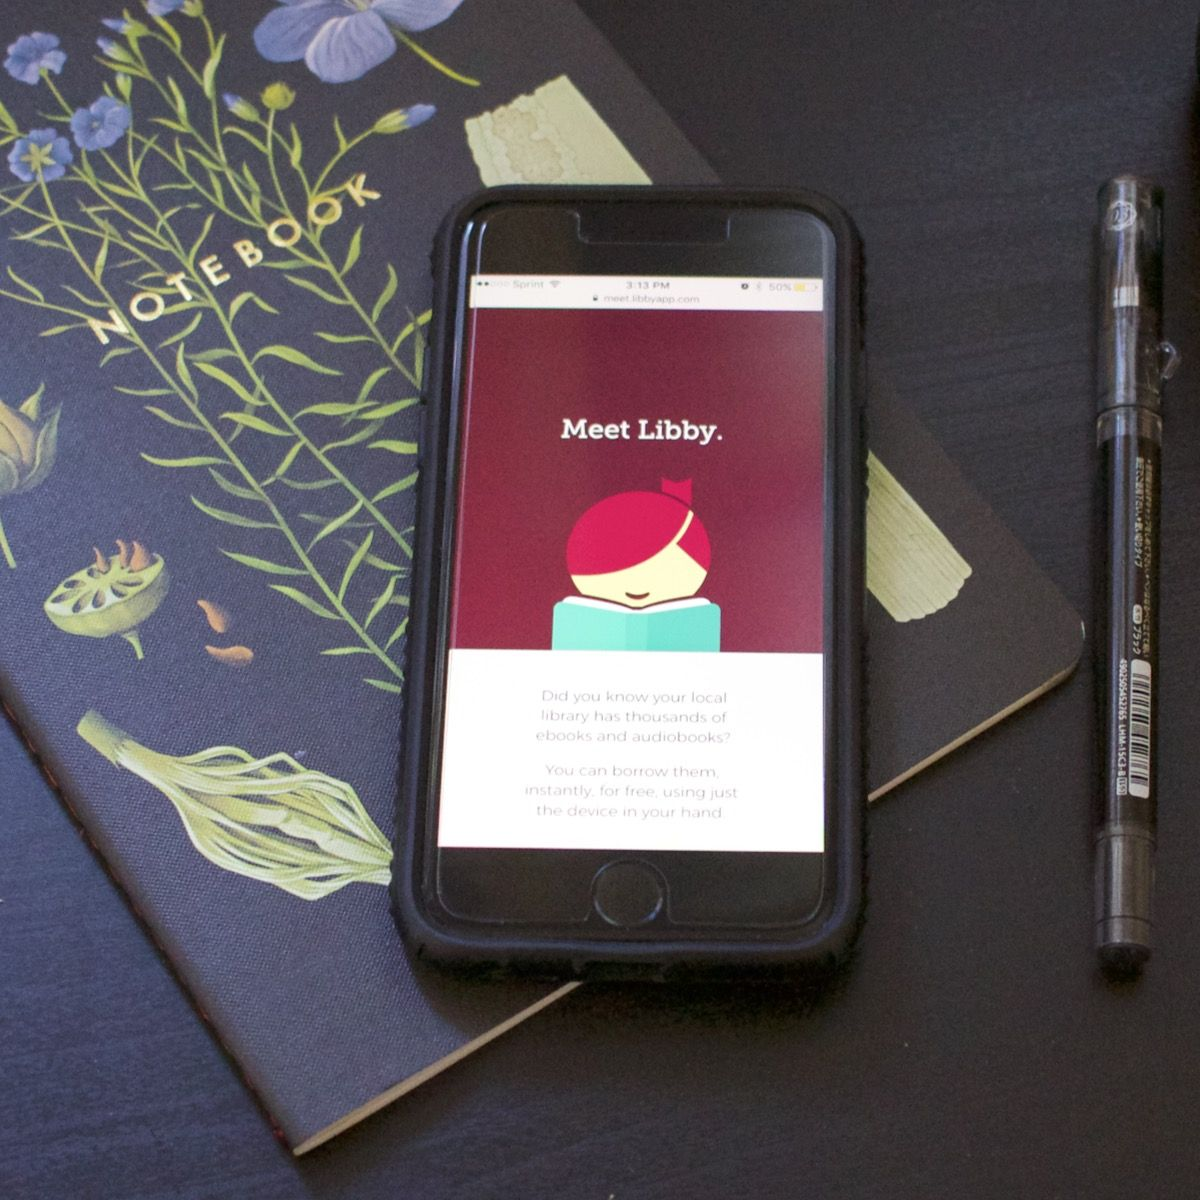 Check out the new app for reading and listening to free